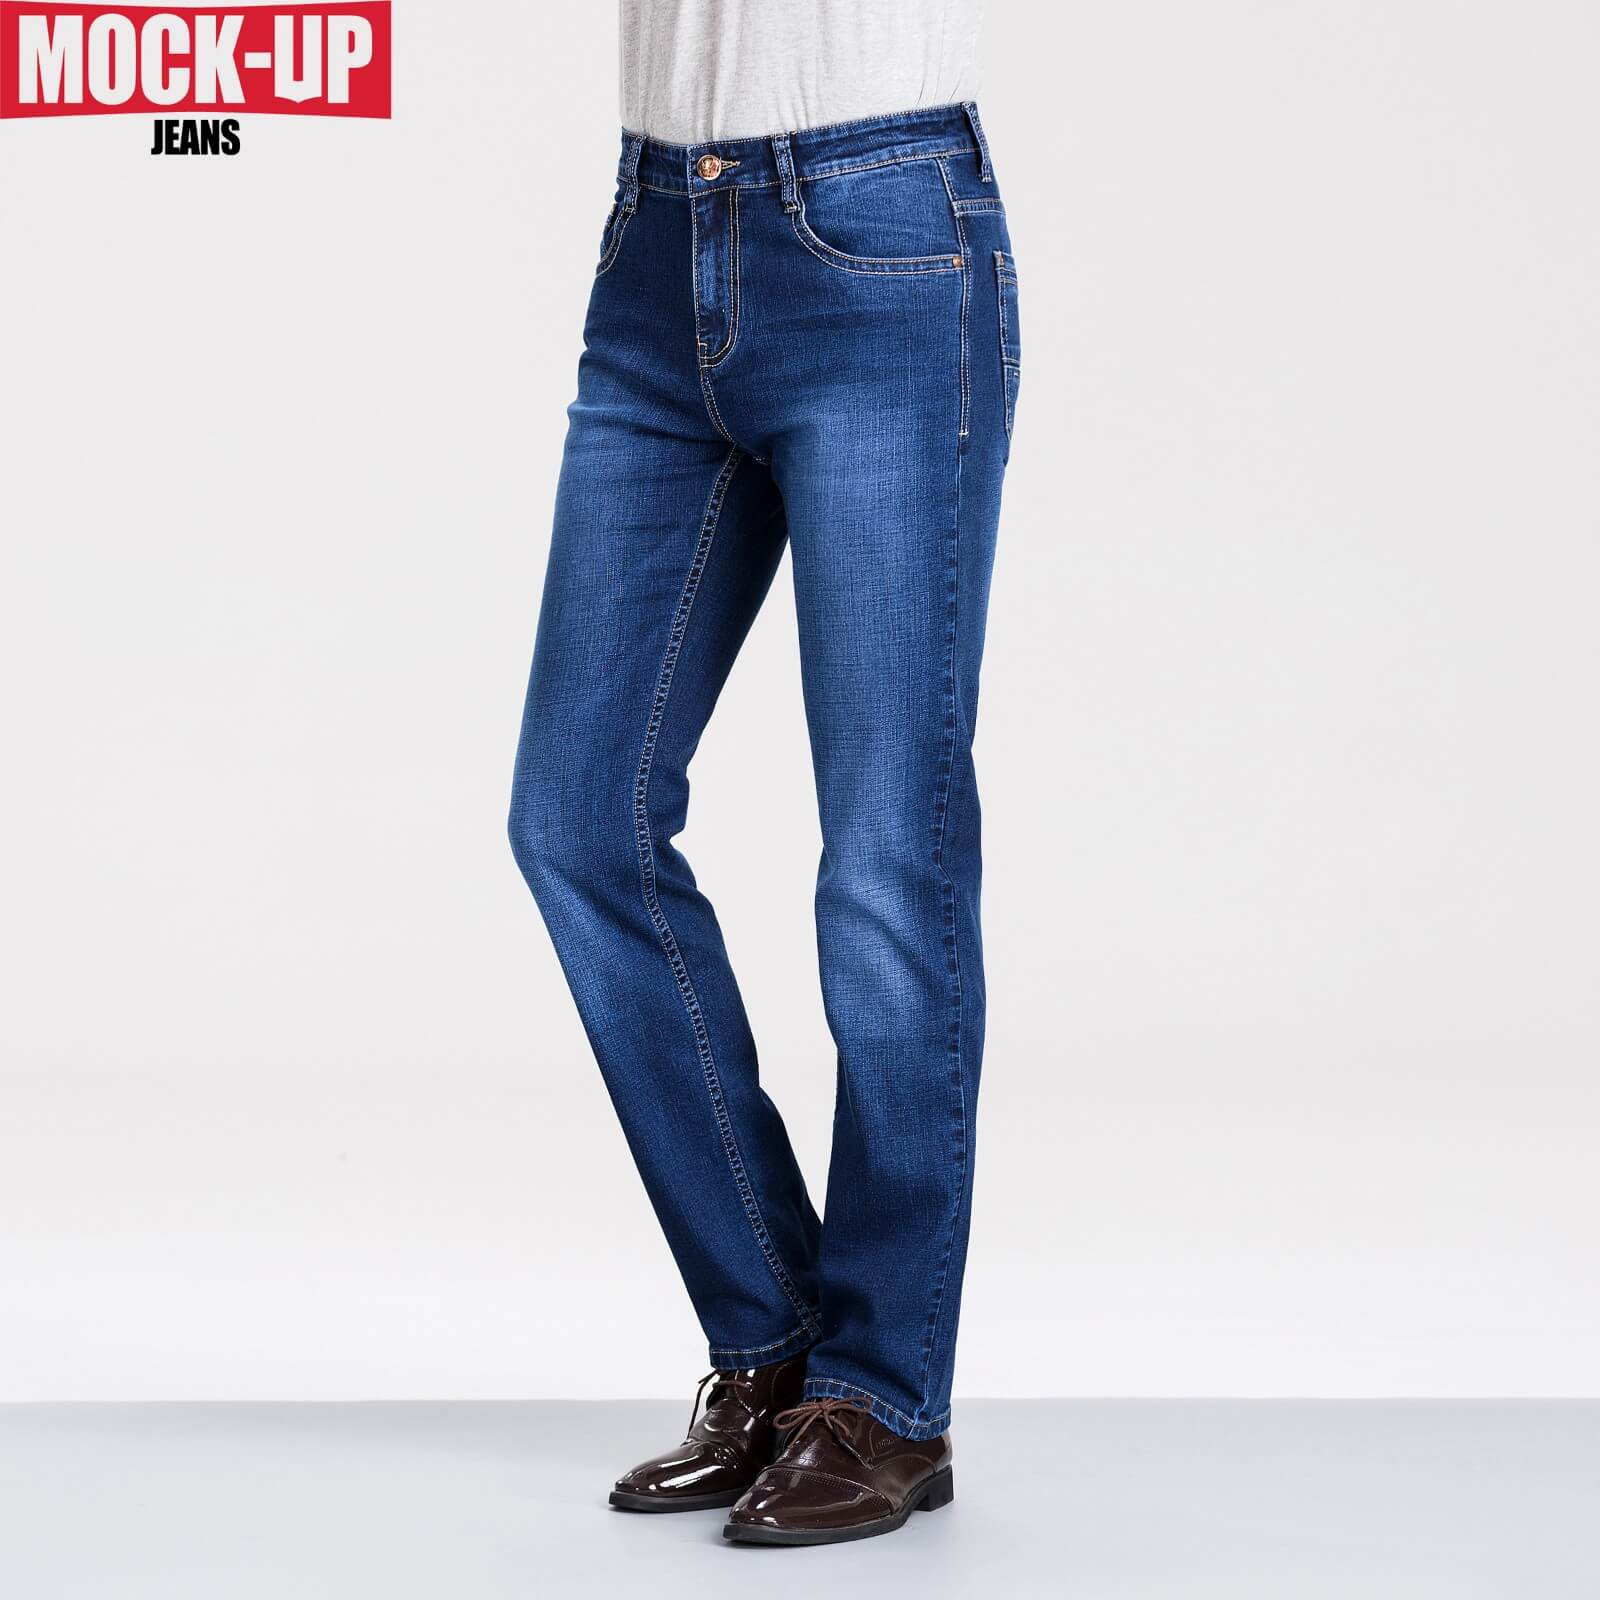 Genuine Mock Up Brand MP-Z806 Slim Jeans Man Blue Solid 100% Cotton Jeans Casual Full Length High Quality 2020 Fashion New Pants